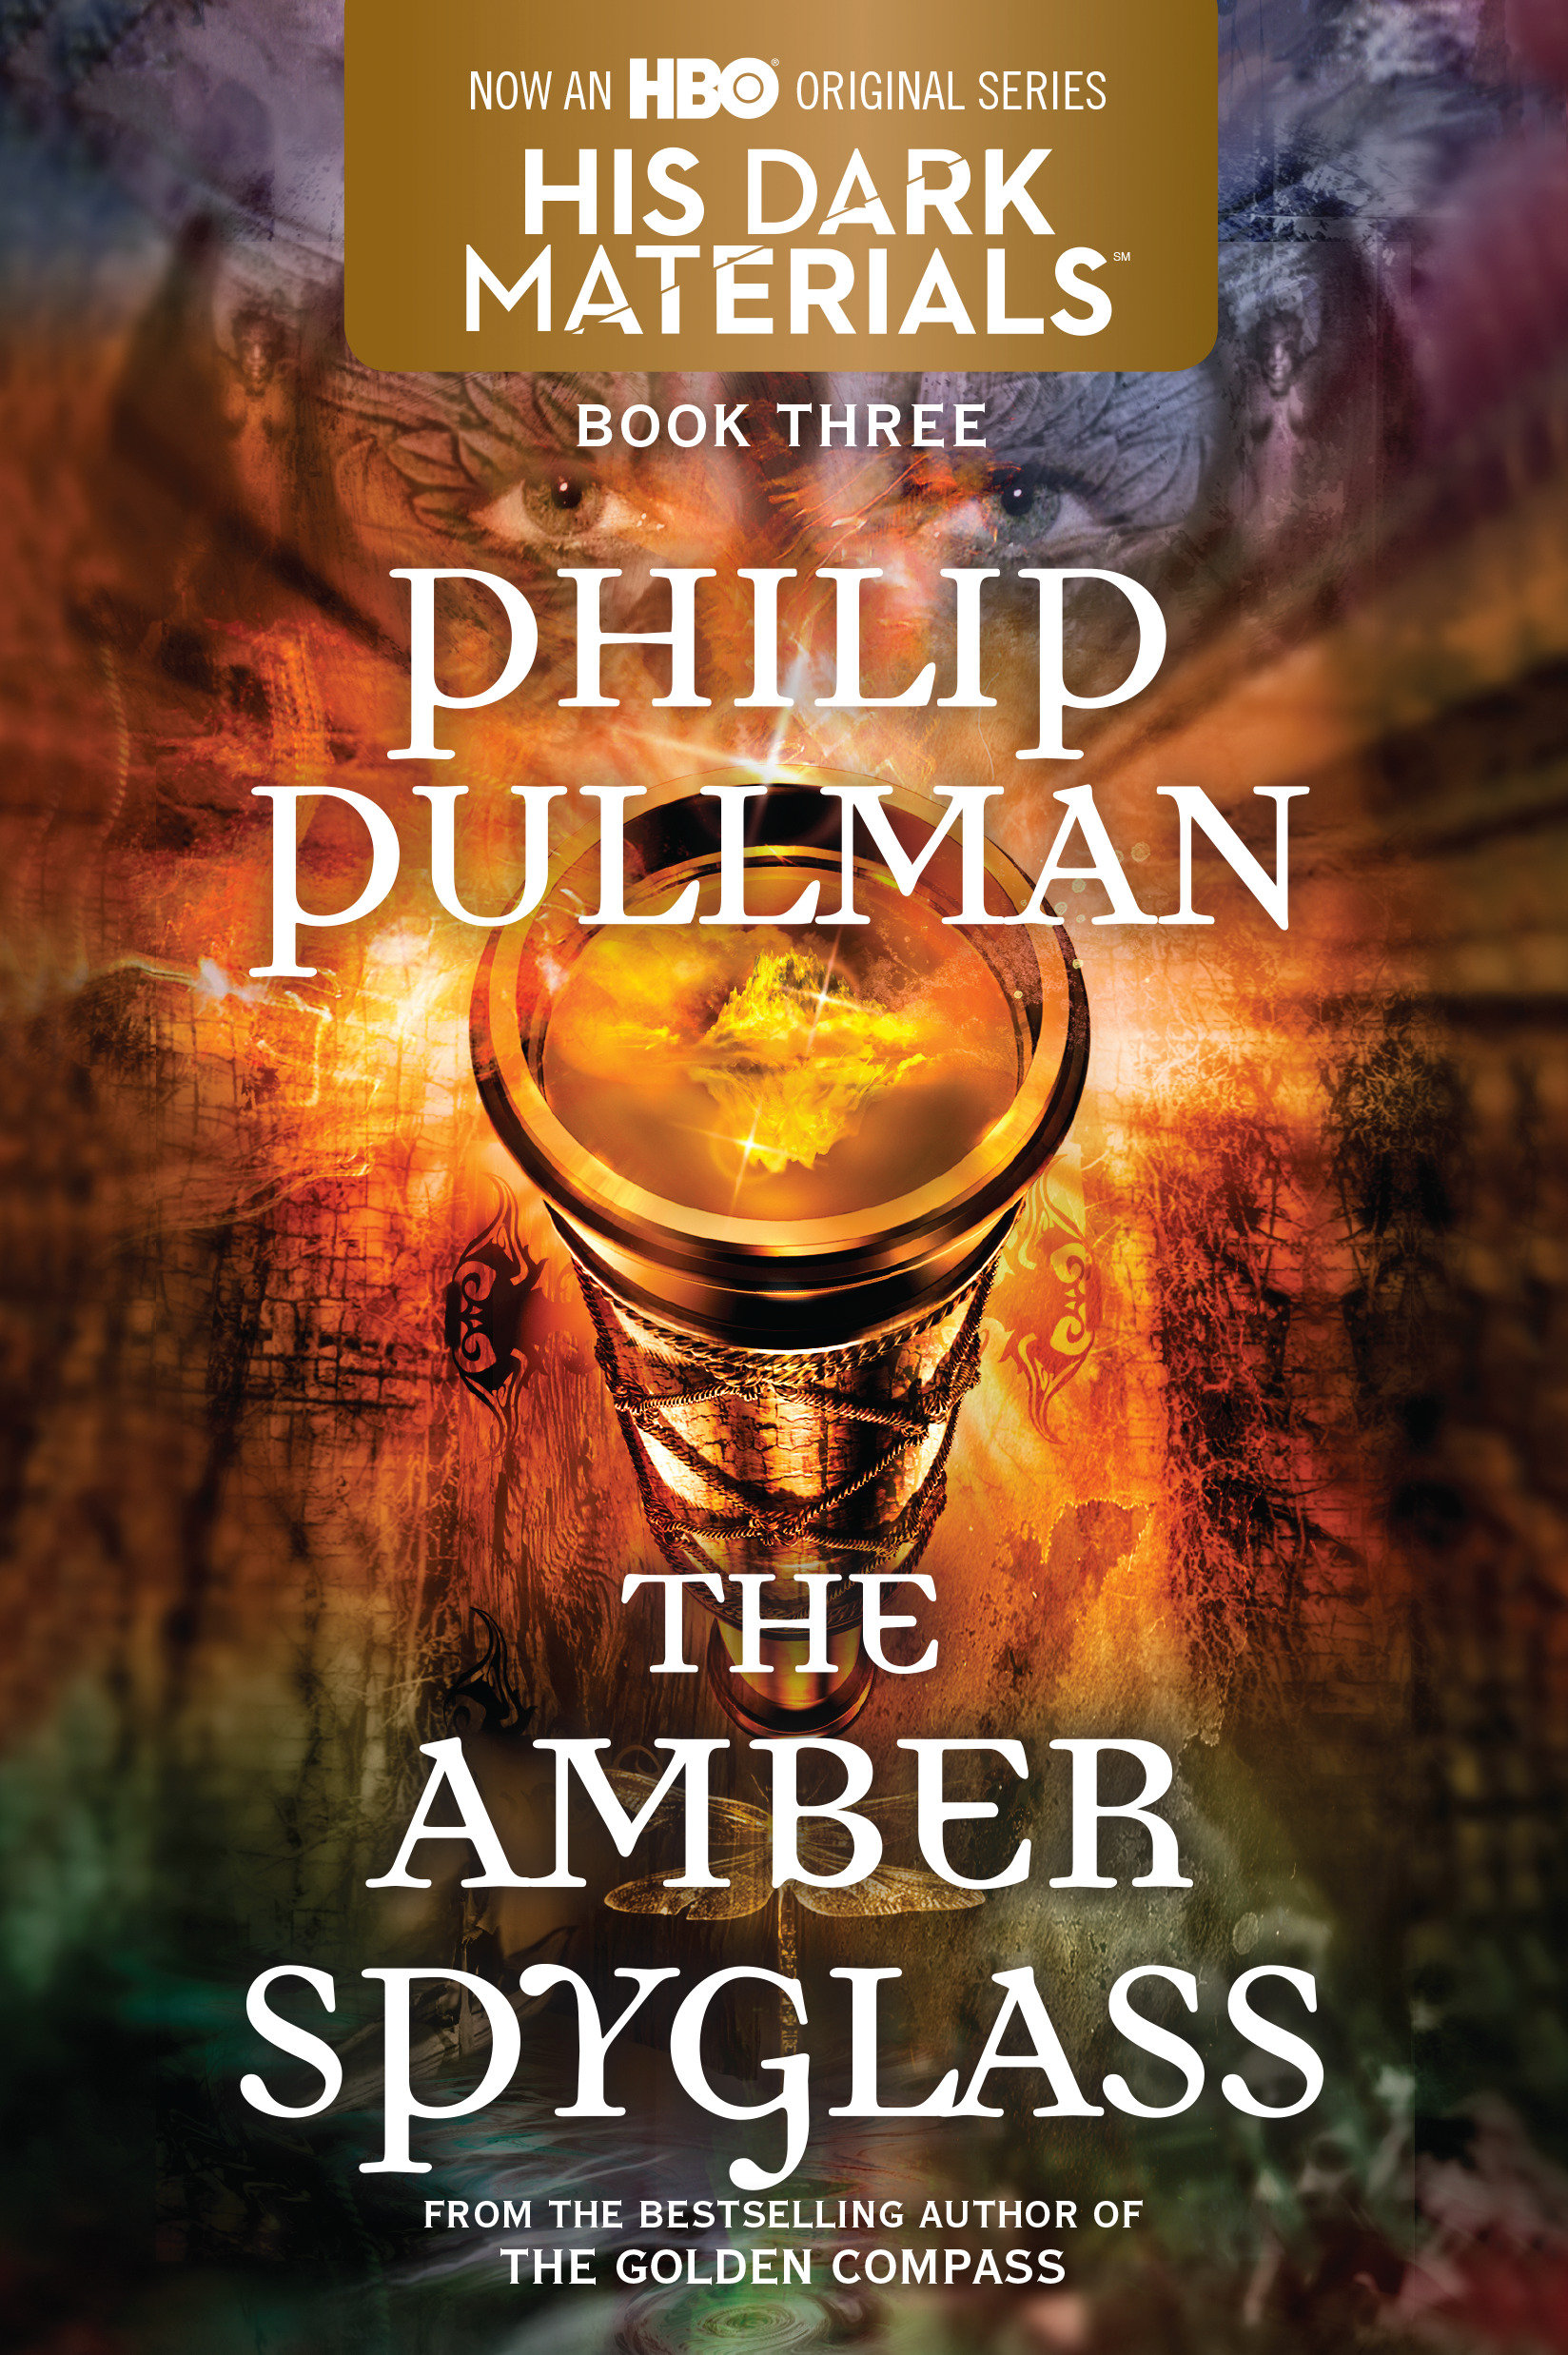 Cover Image of His Dark Materials: The Amber Spyglass (Book 3)